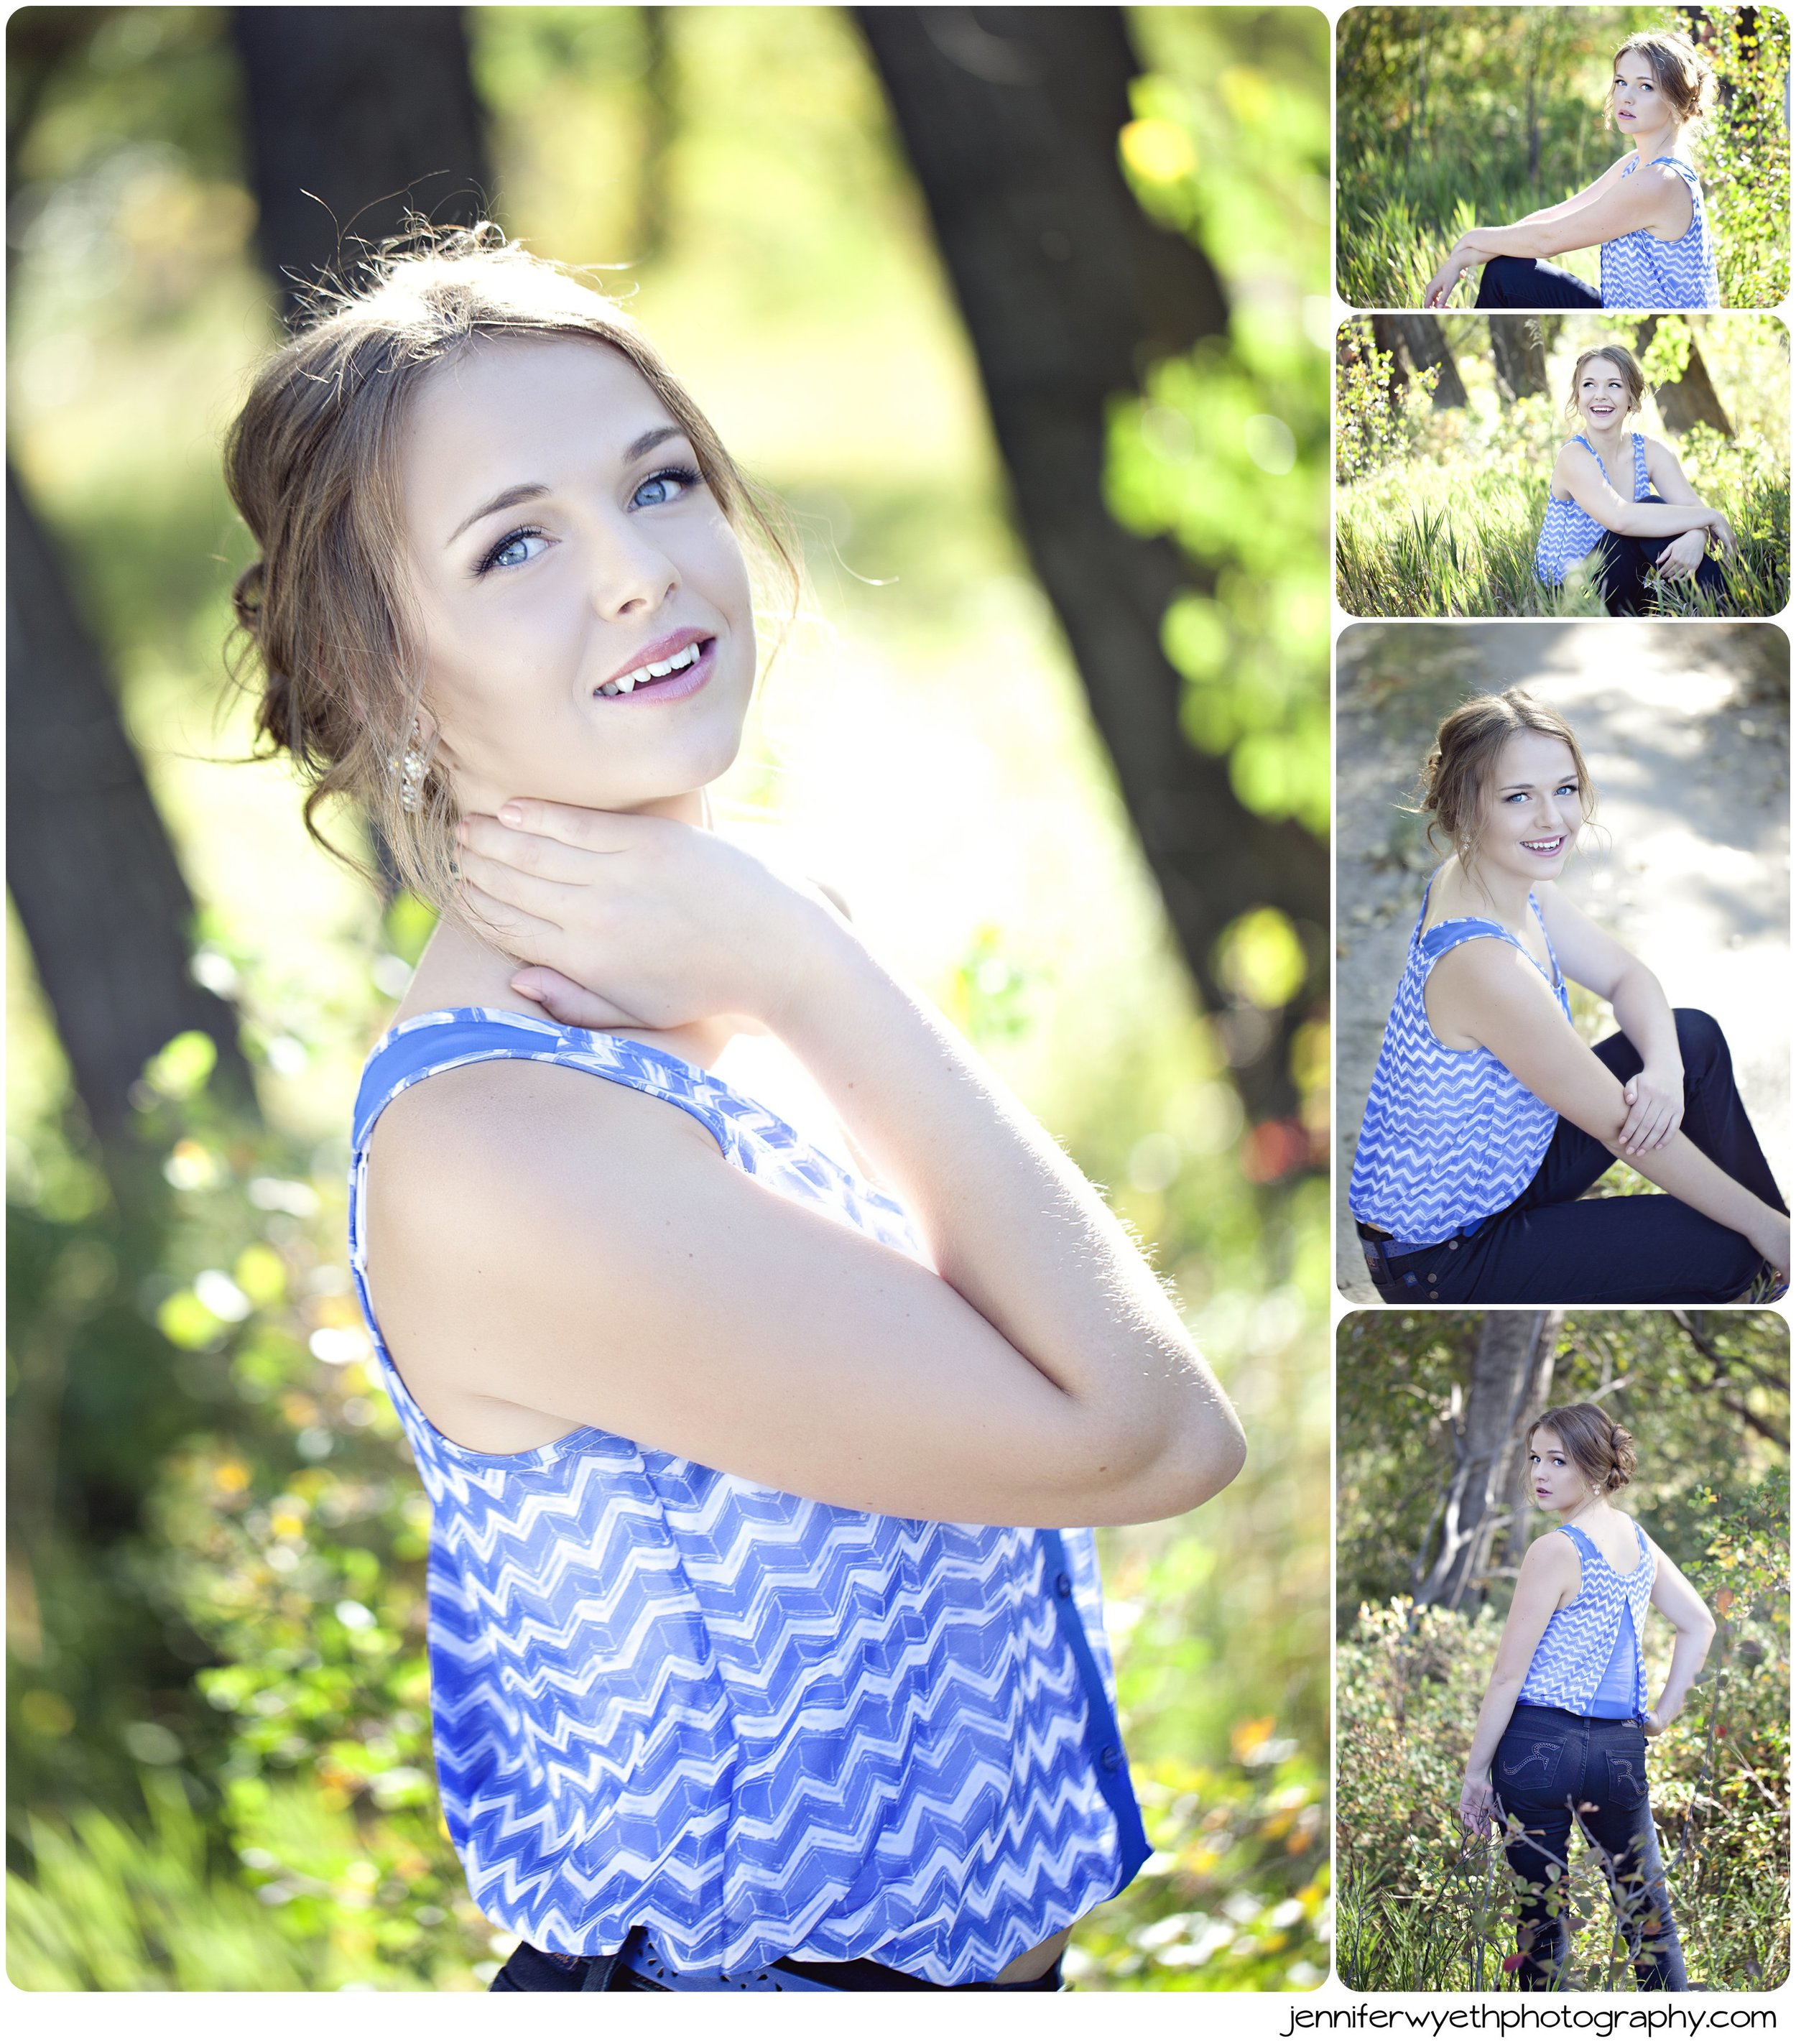 blue chevron blouse accents a pretty girls blue eyes